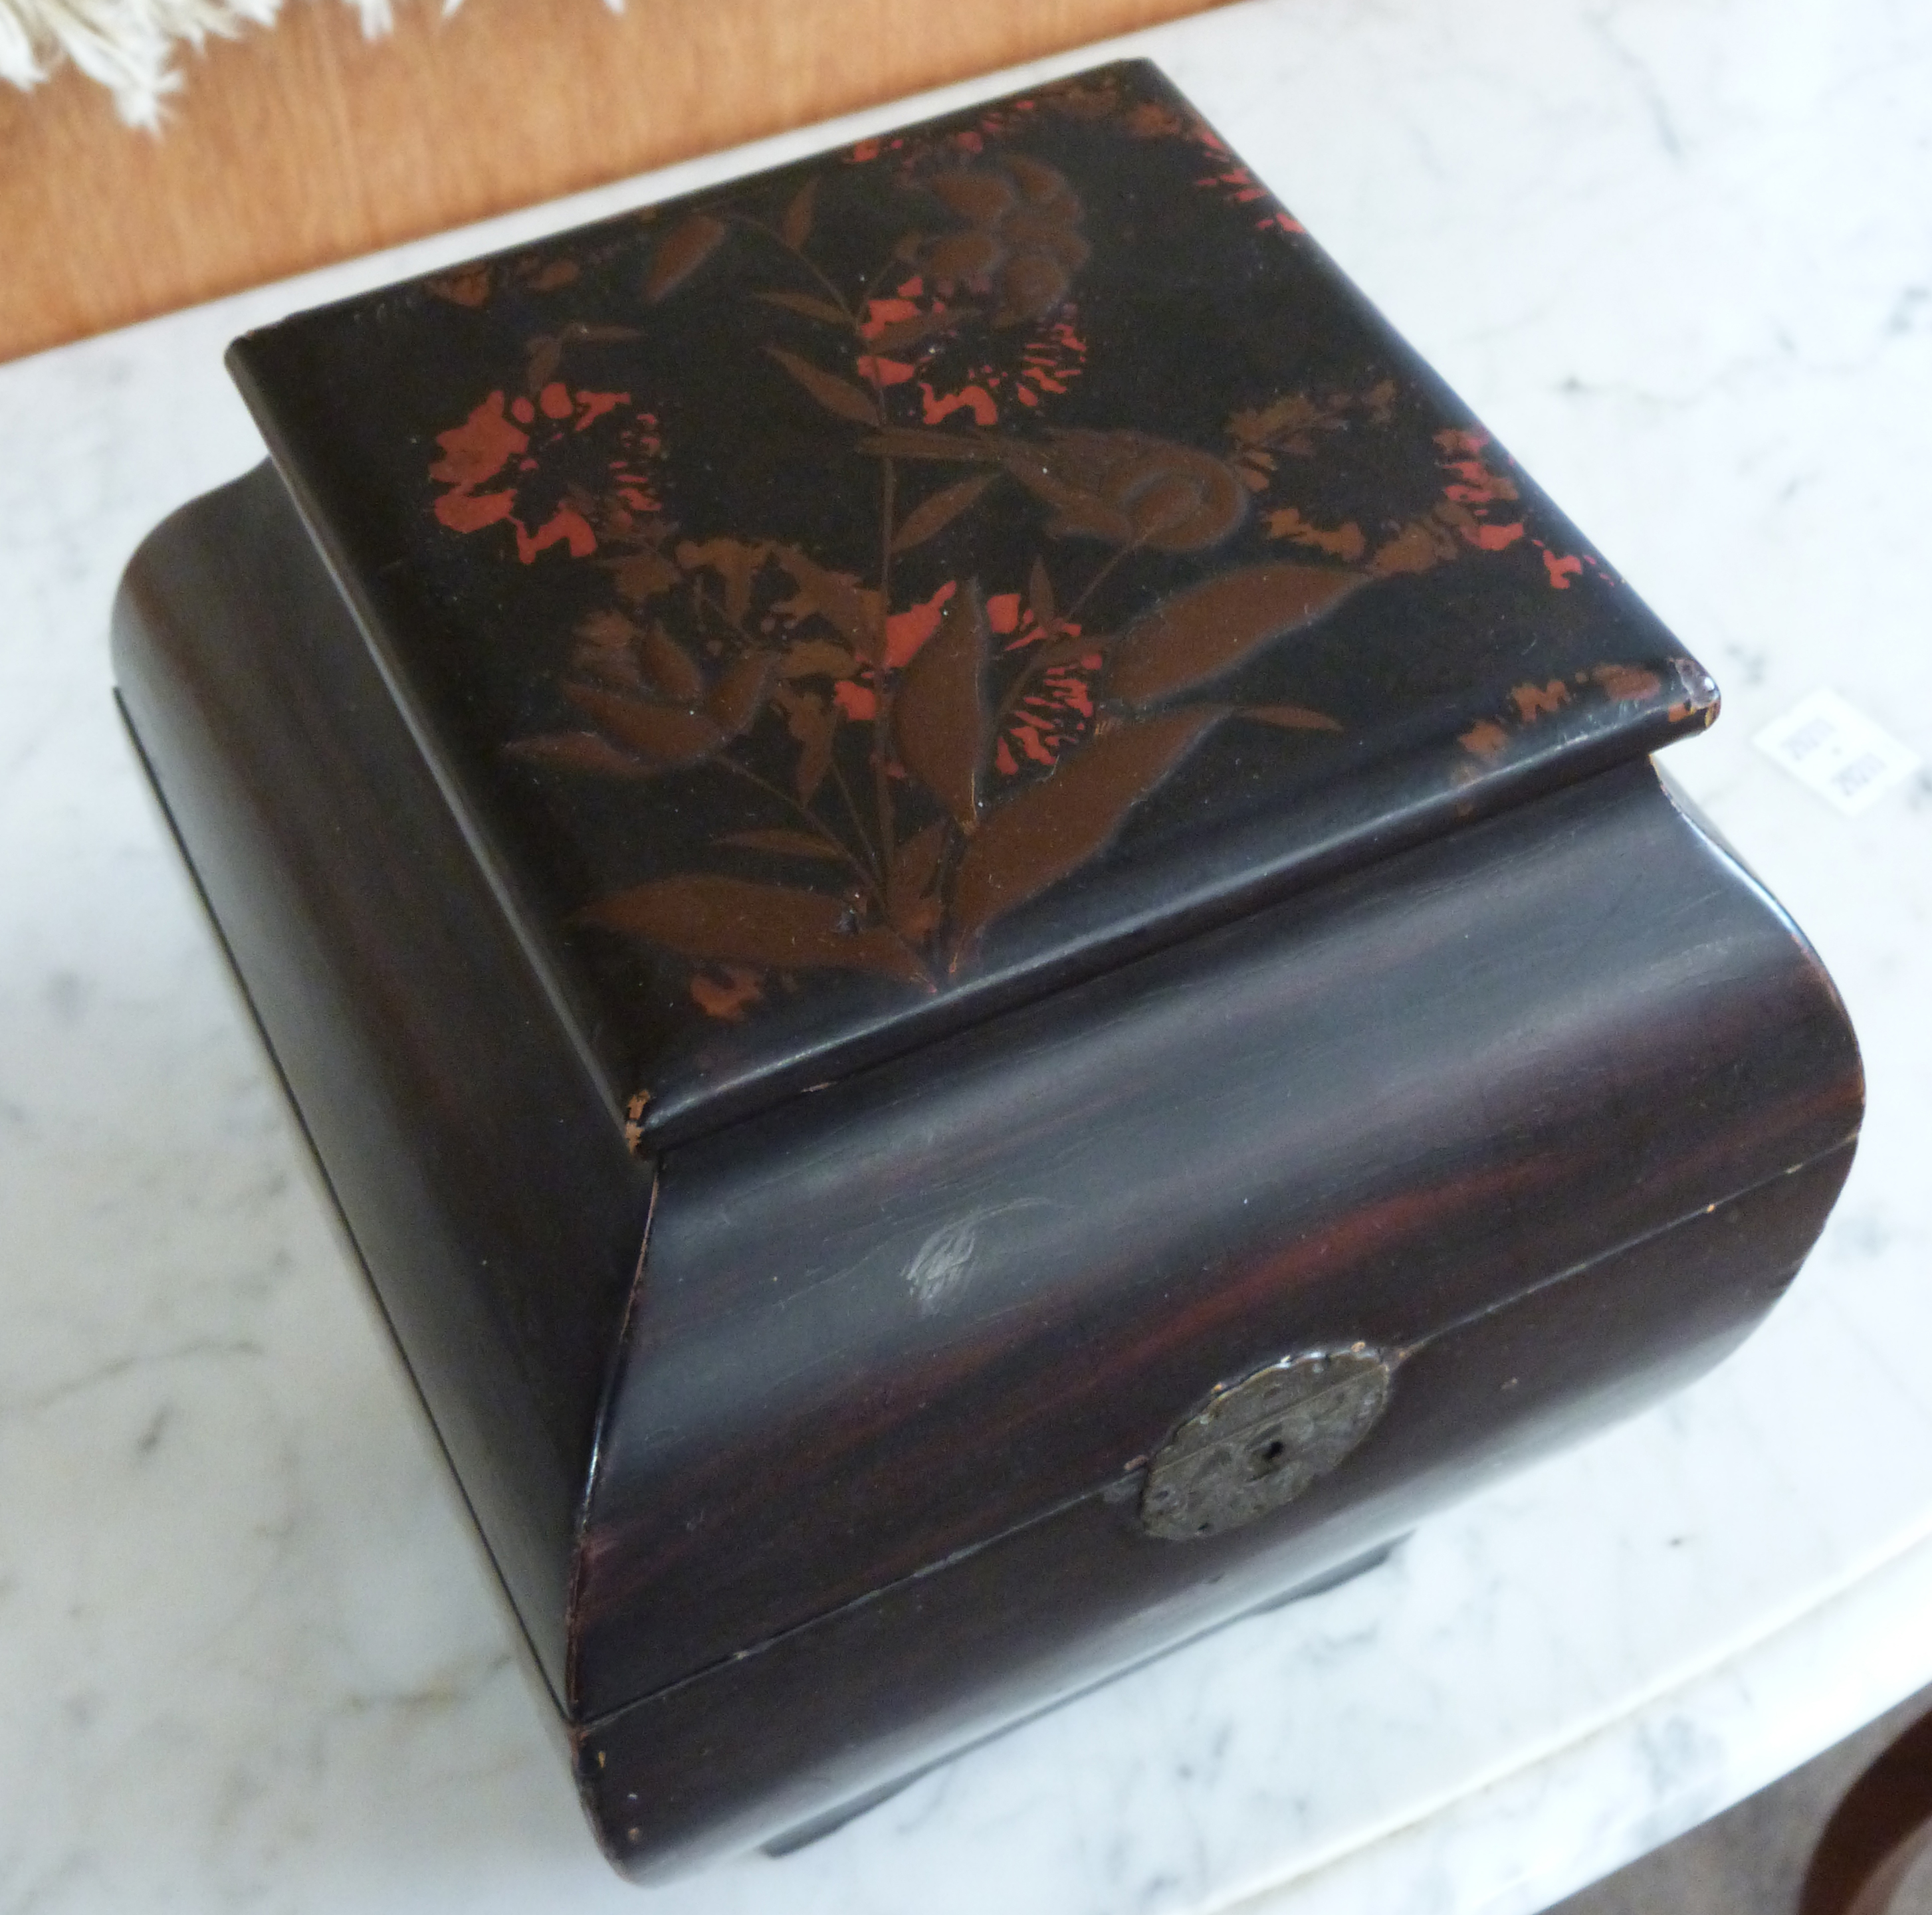 Japanese porcelain tea caddy with a lacquer decoration to the top of flowers, 20cm high - Image 4 of 5